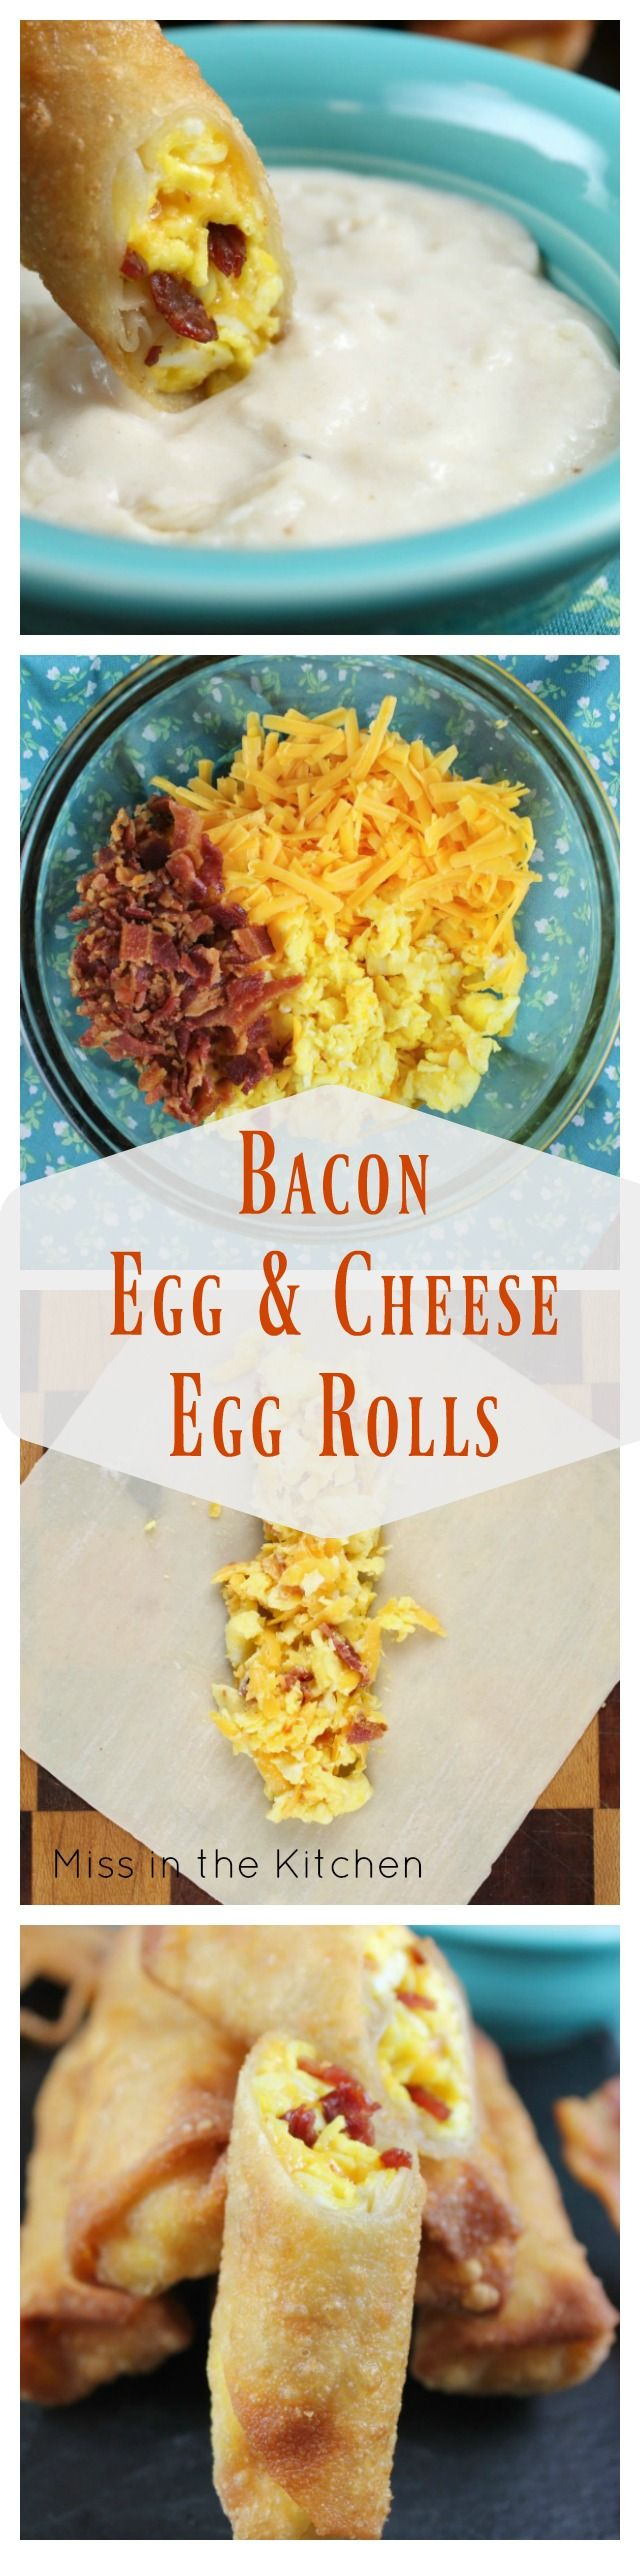 Bacon Egg and Cheese Egg Rolls Recipe ~ Perfect Make Ahead Breakfast from MissintheKitchen.com